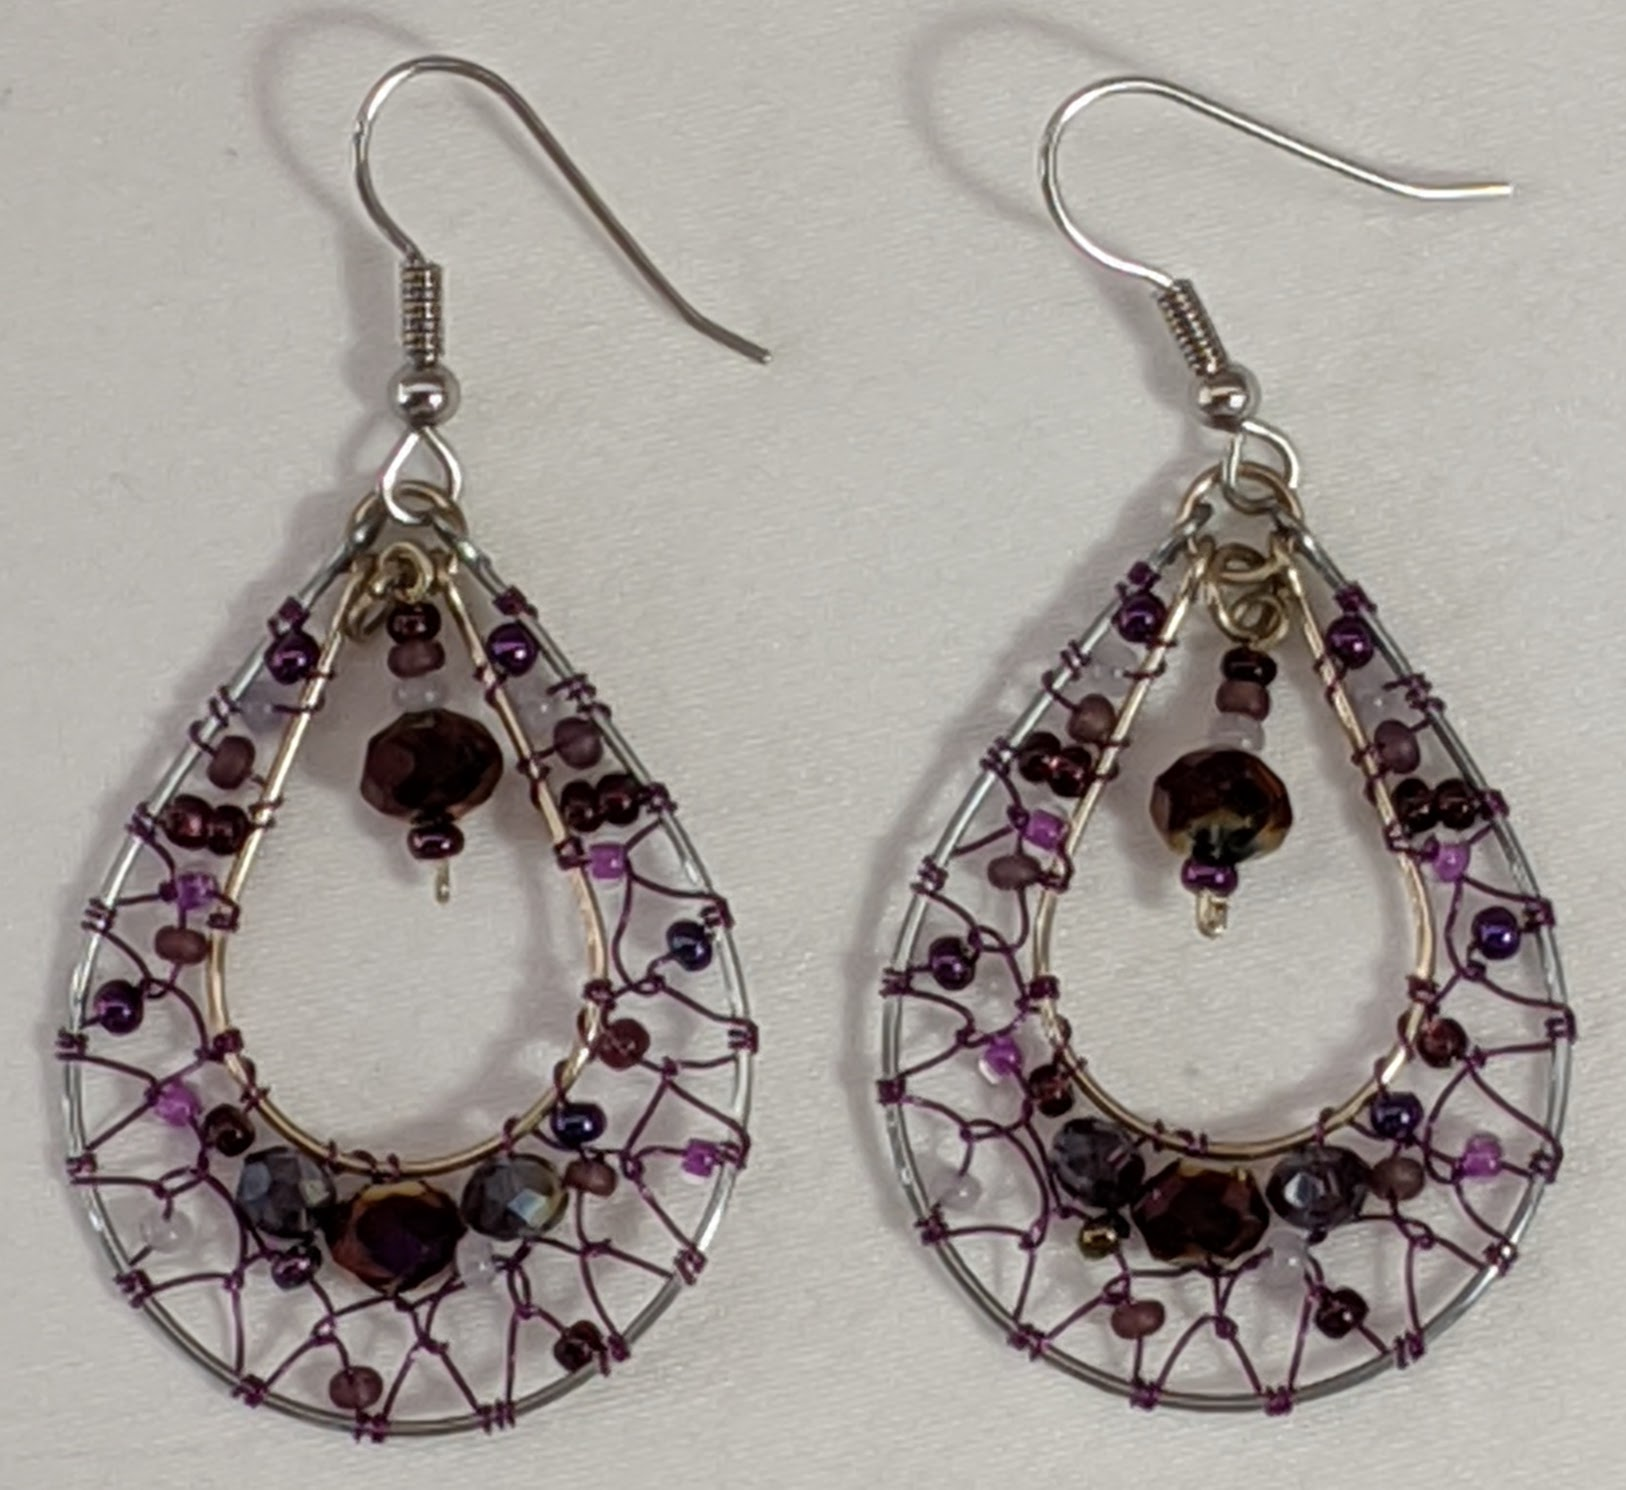 Teardrop Dreamcatcher Earrings - Purples